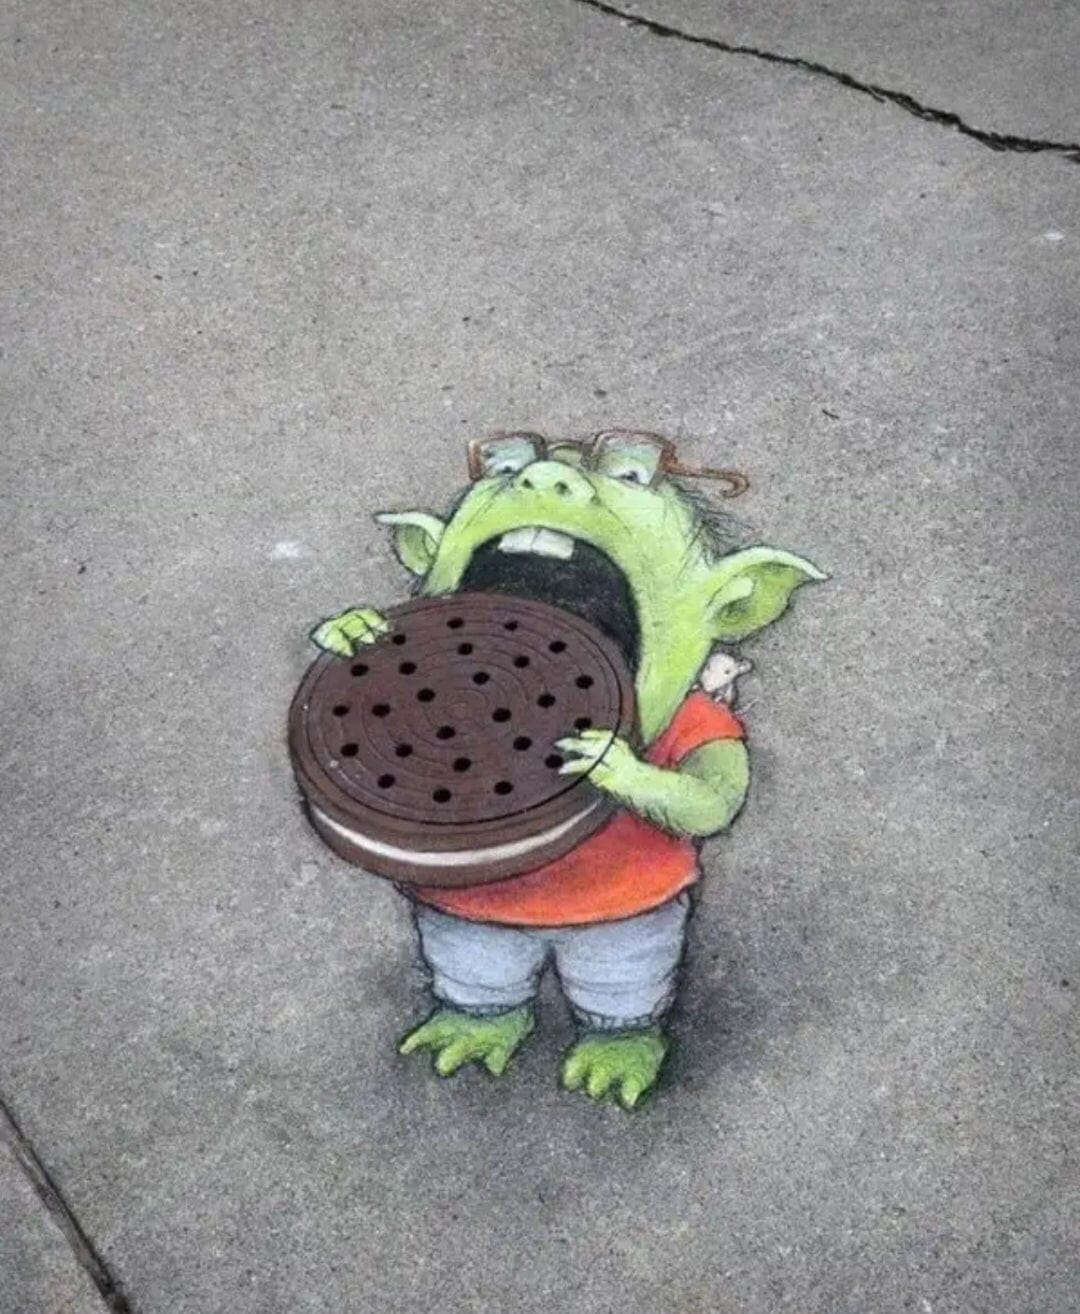 Manhole street art eating oreo cookie